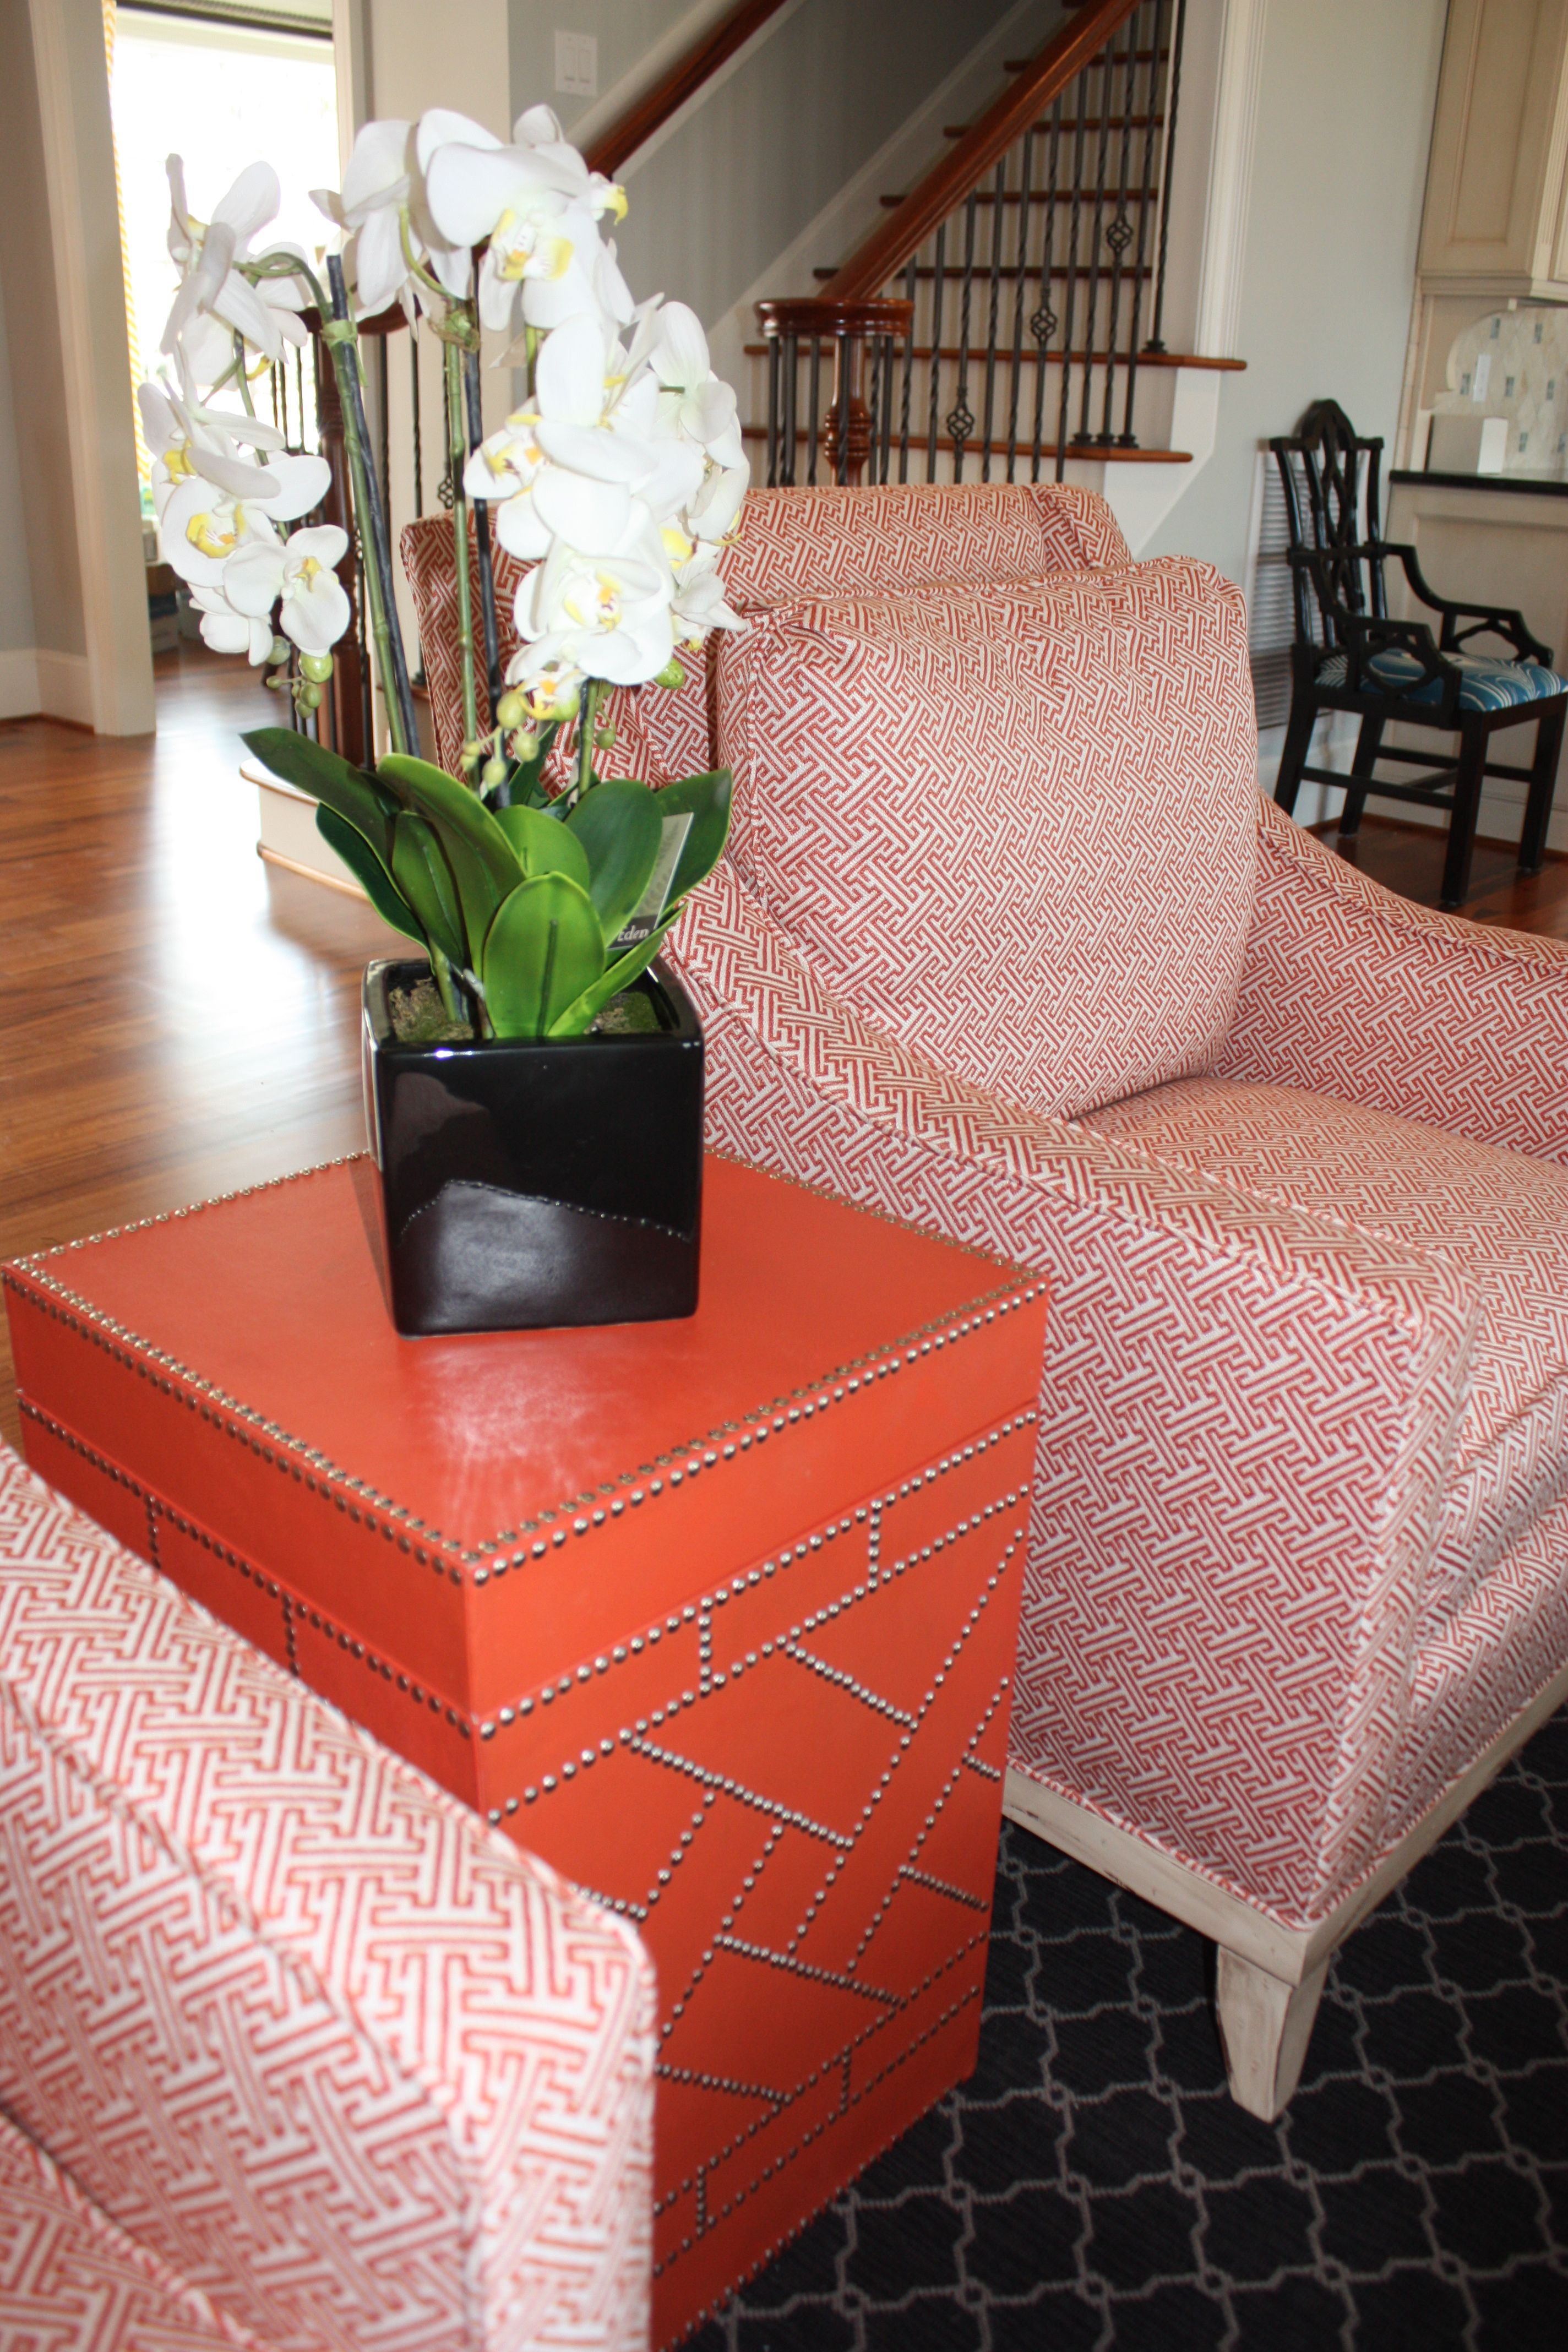 Beautiful HomeGoods Has Great Side Tables That Add Storage And Color To Any Space.  This Piece Awesome Ideas